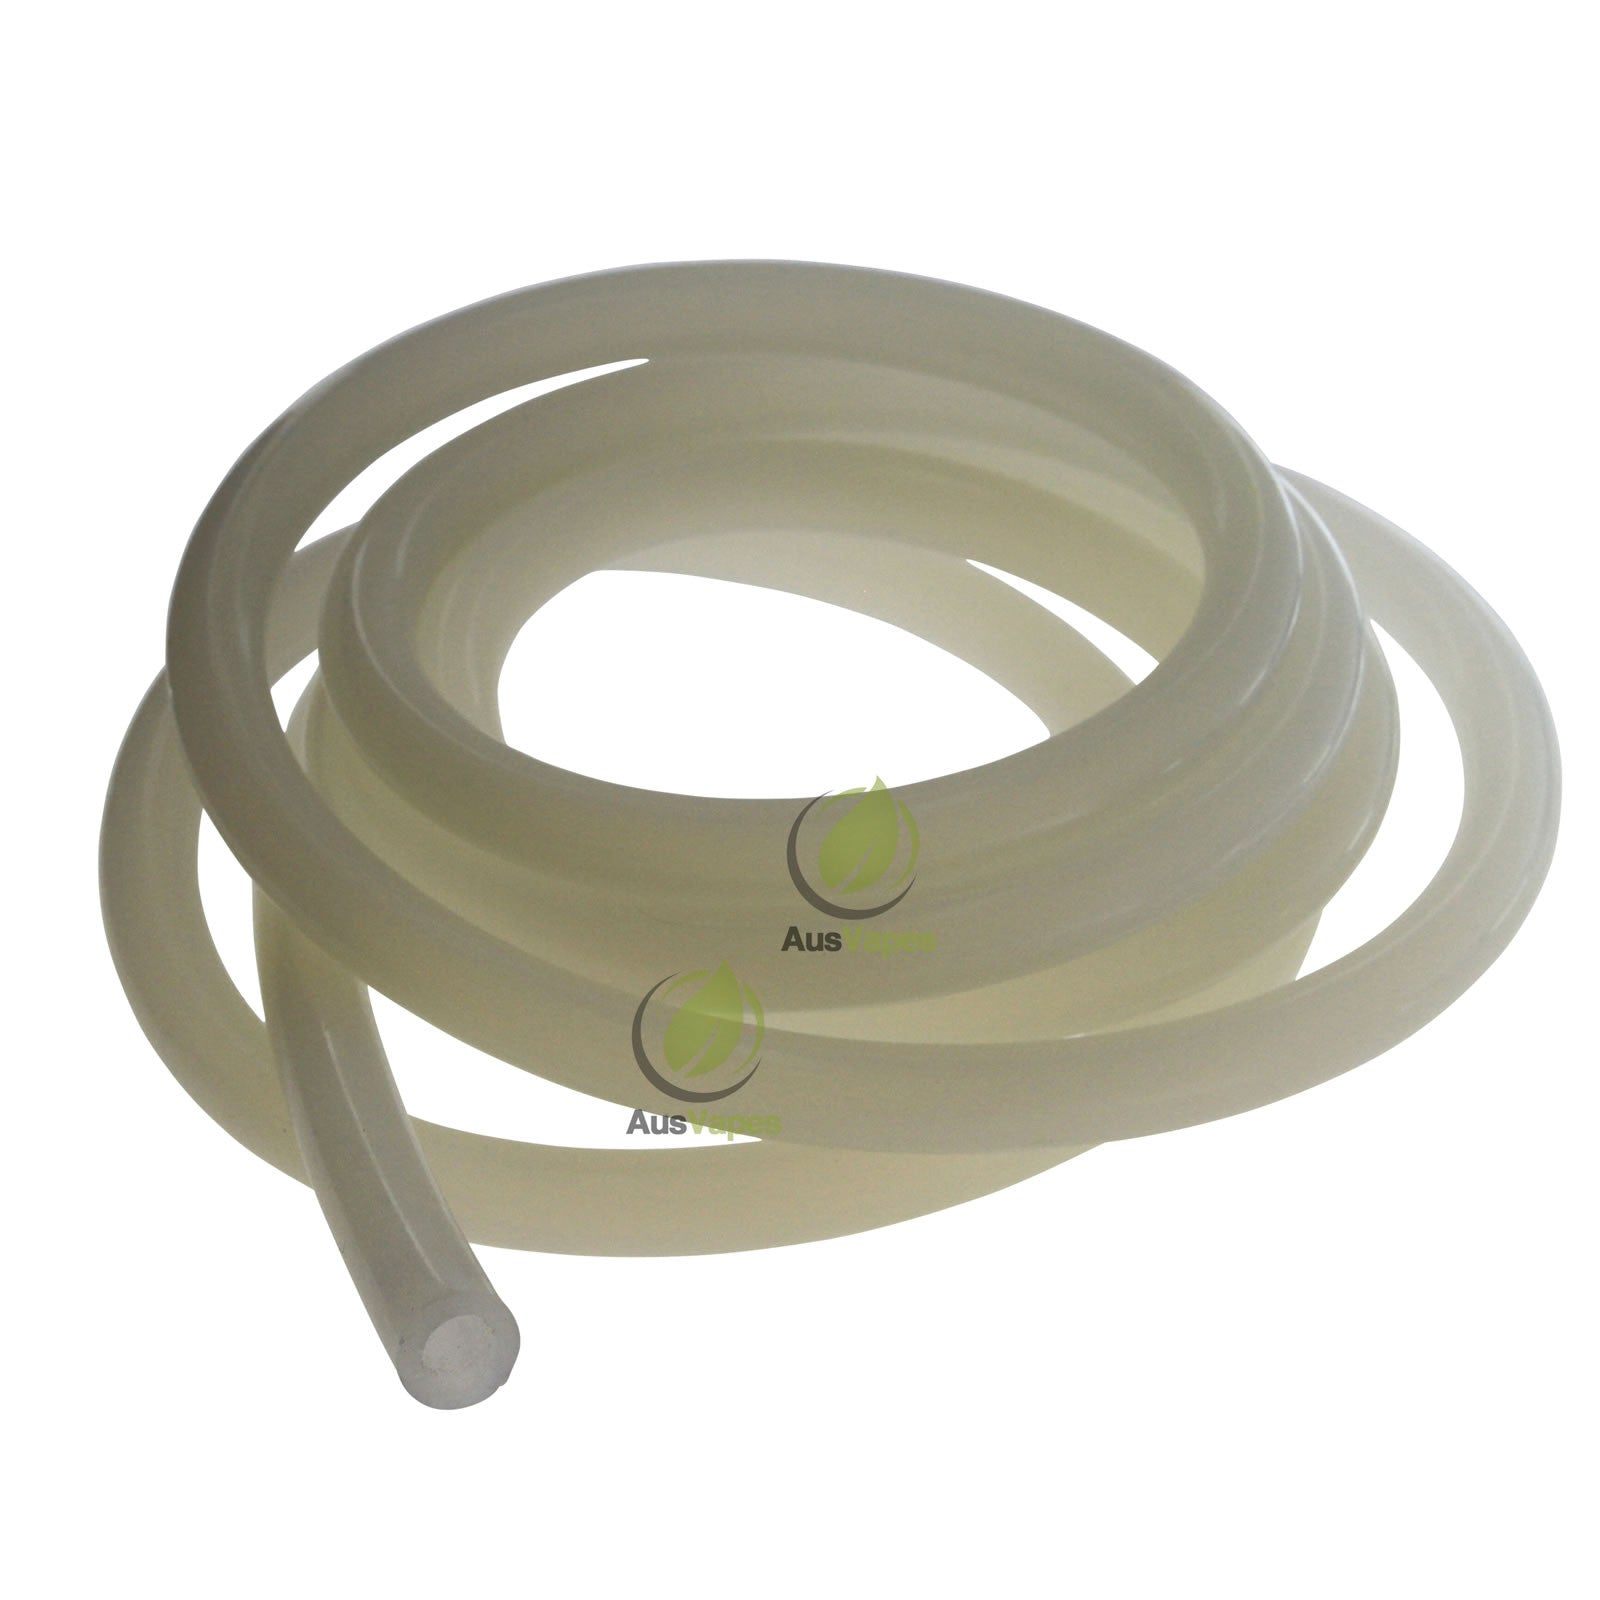 DISCONTINUED Silicone Tubing 3/8 ID x 5/8 OD - 1m